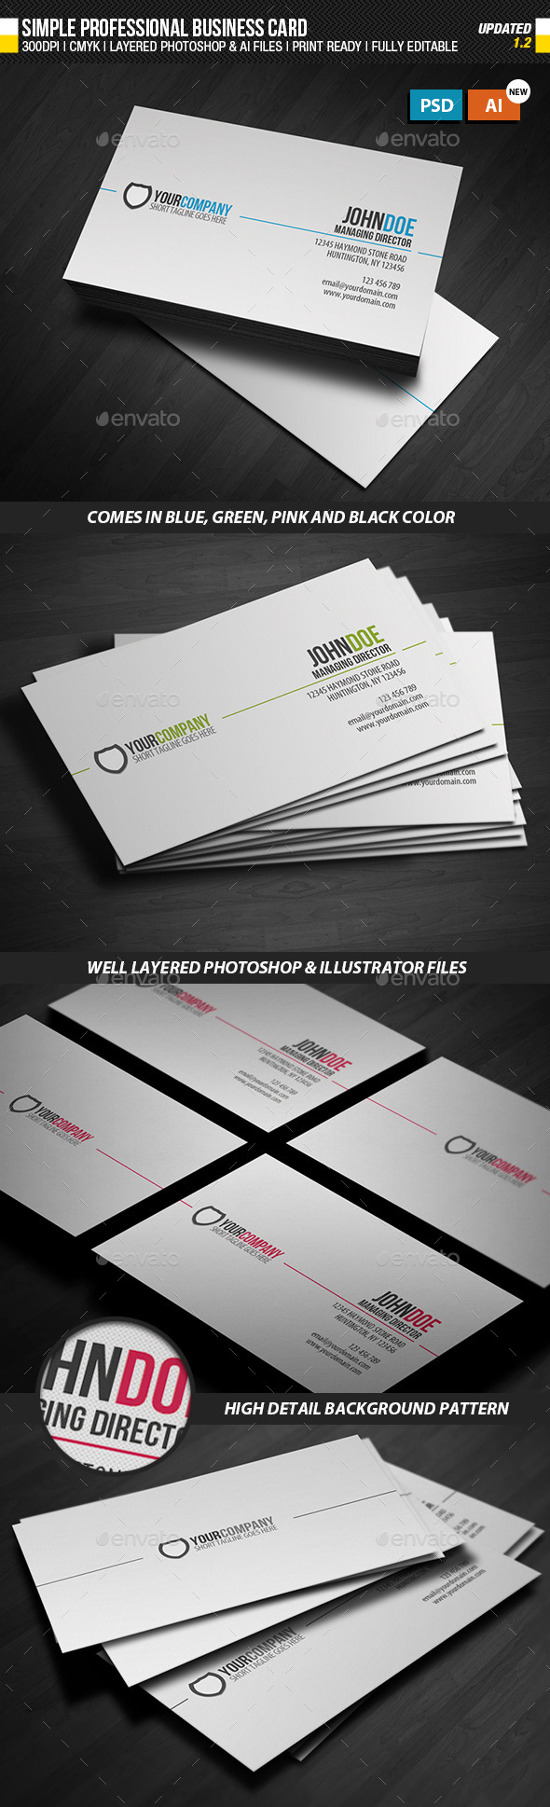 Best Business Card Templates For Corporate - Professional business cards templates